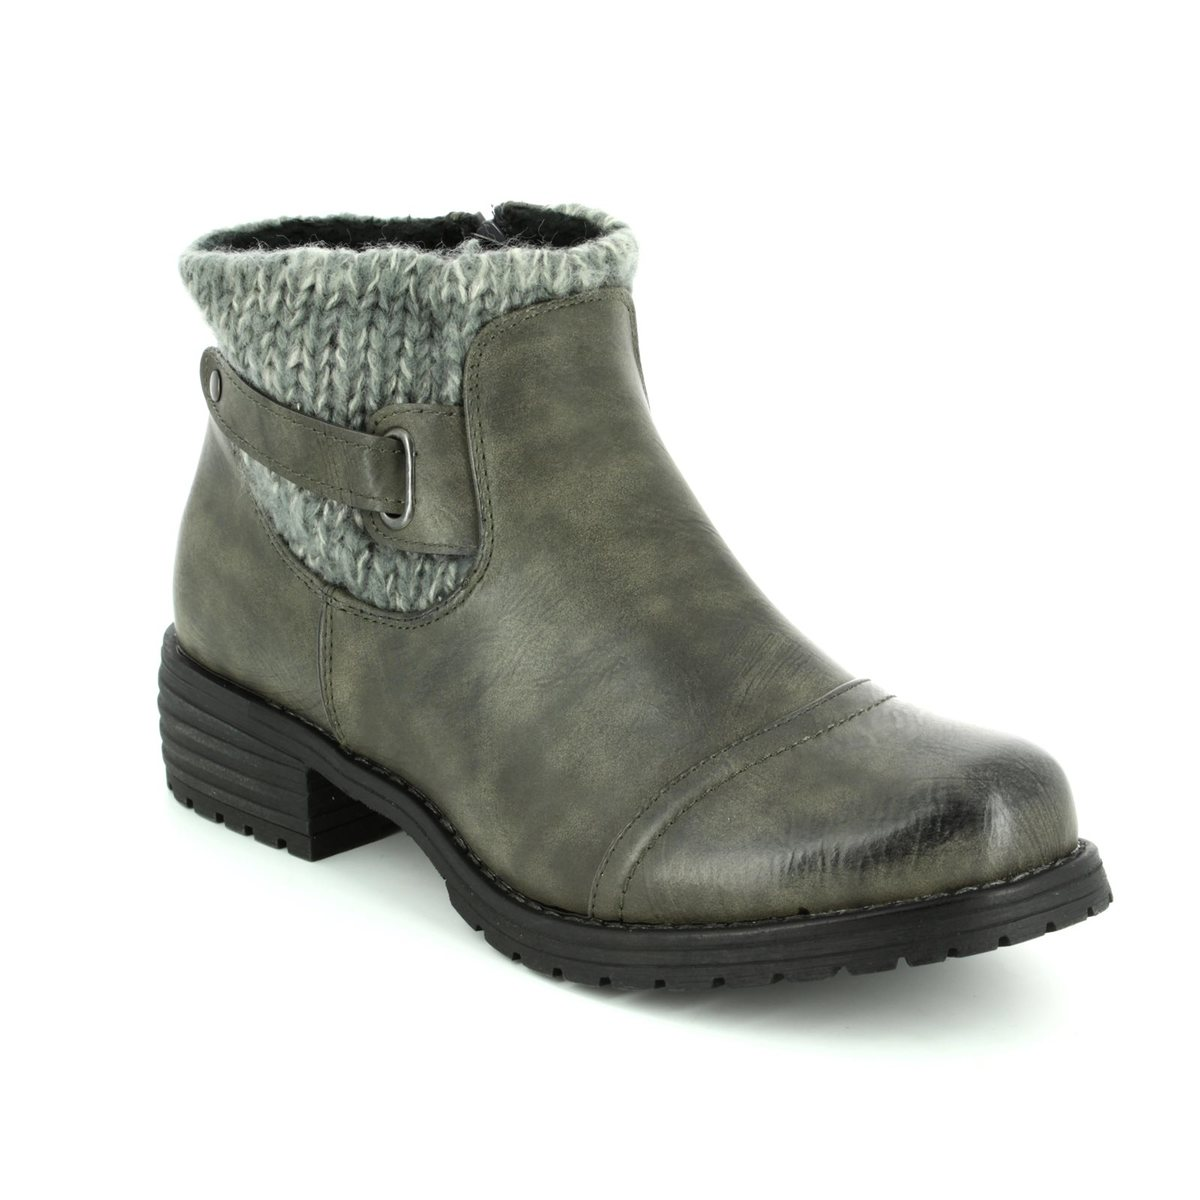 763f54ab10 Lotus Ankle Boots - Grey - 40425/00 AYLA